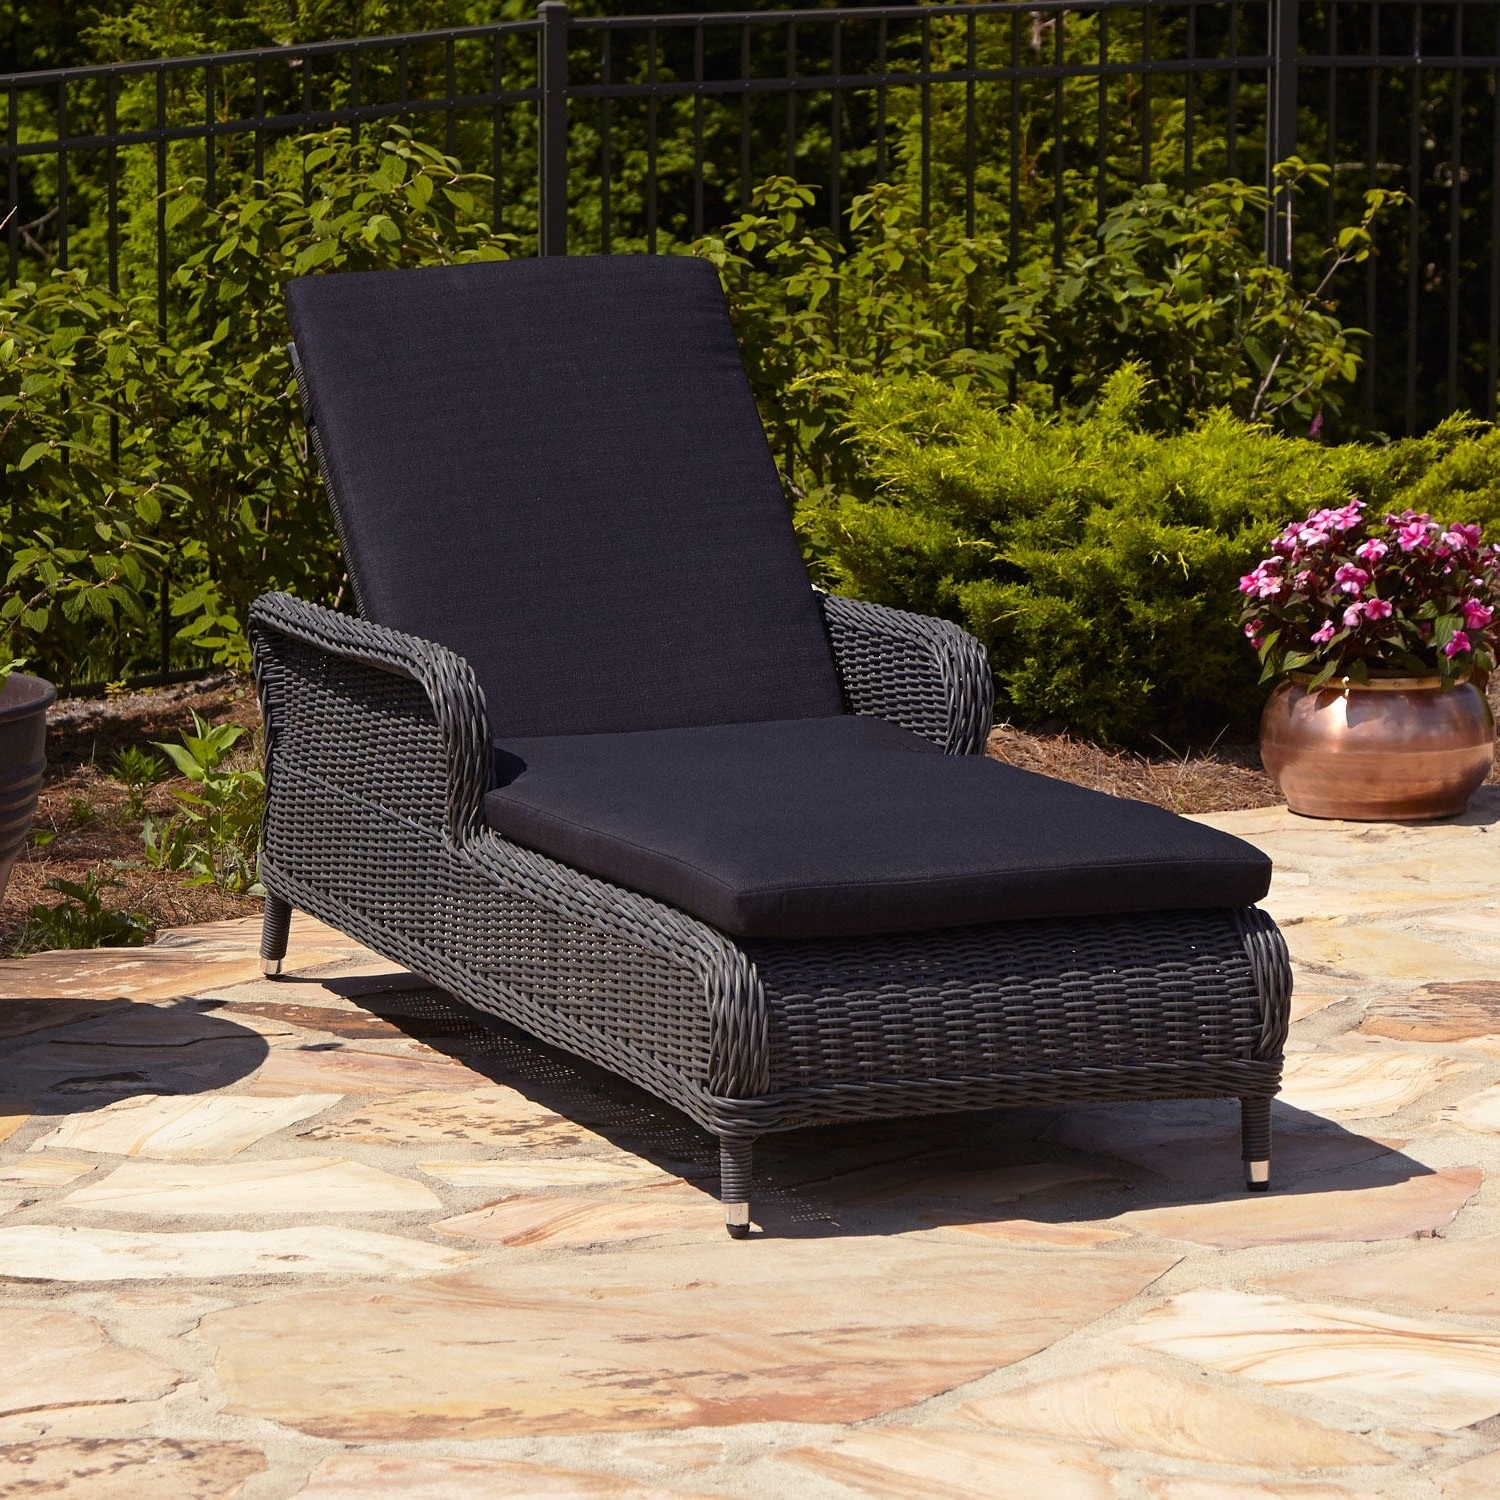 Current Remarkable Wicker Chaise Lounge Chair Gray Patio Furniture All Pertaining To Chaise Lounge Chairs With Cushions (View 5 of 15)